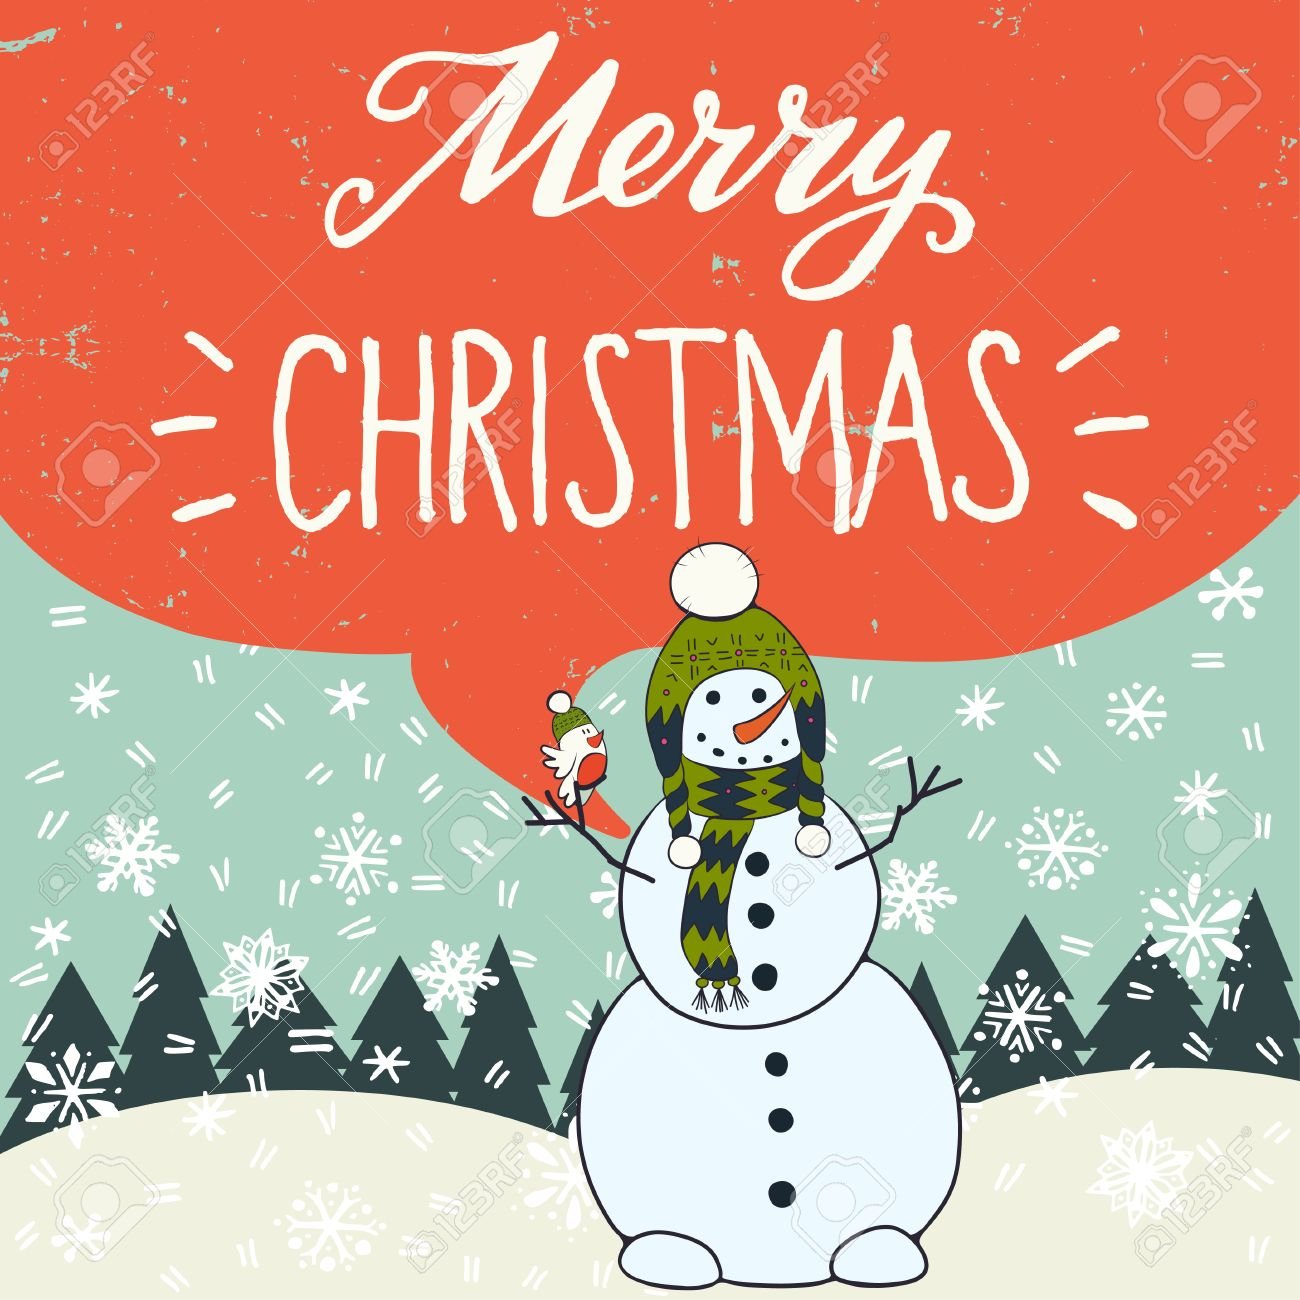 Merry Christmas Hand Lettering With Funny Cartoon Snowman, Fir ...